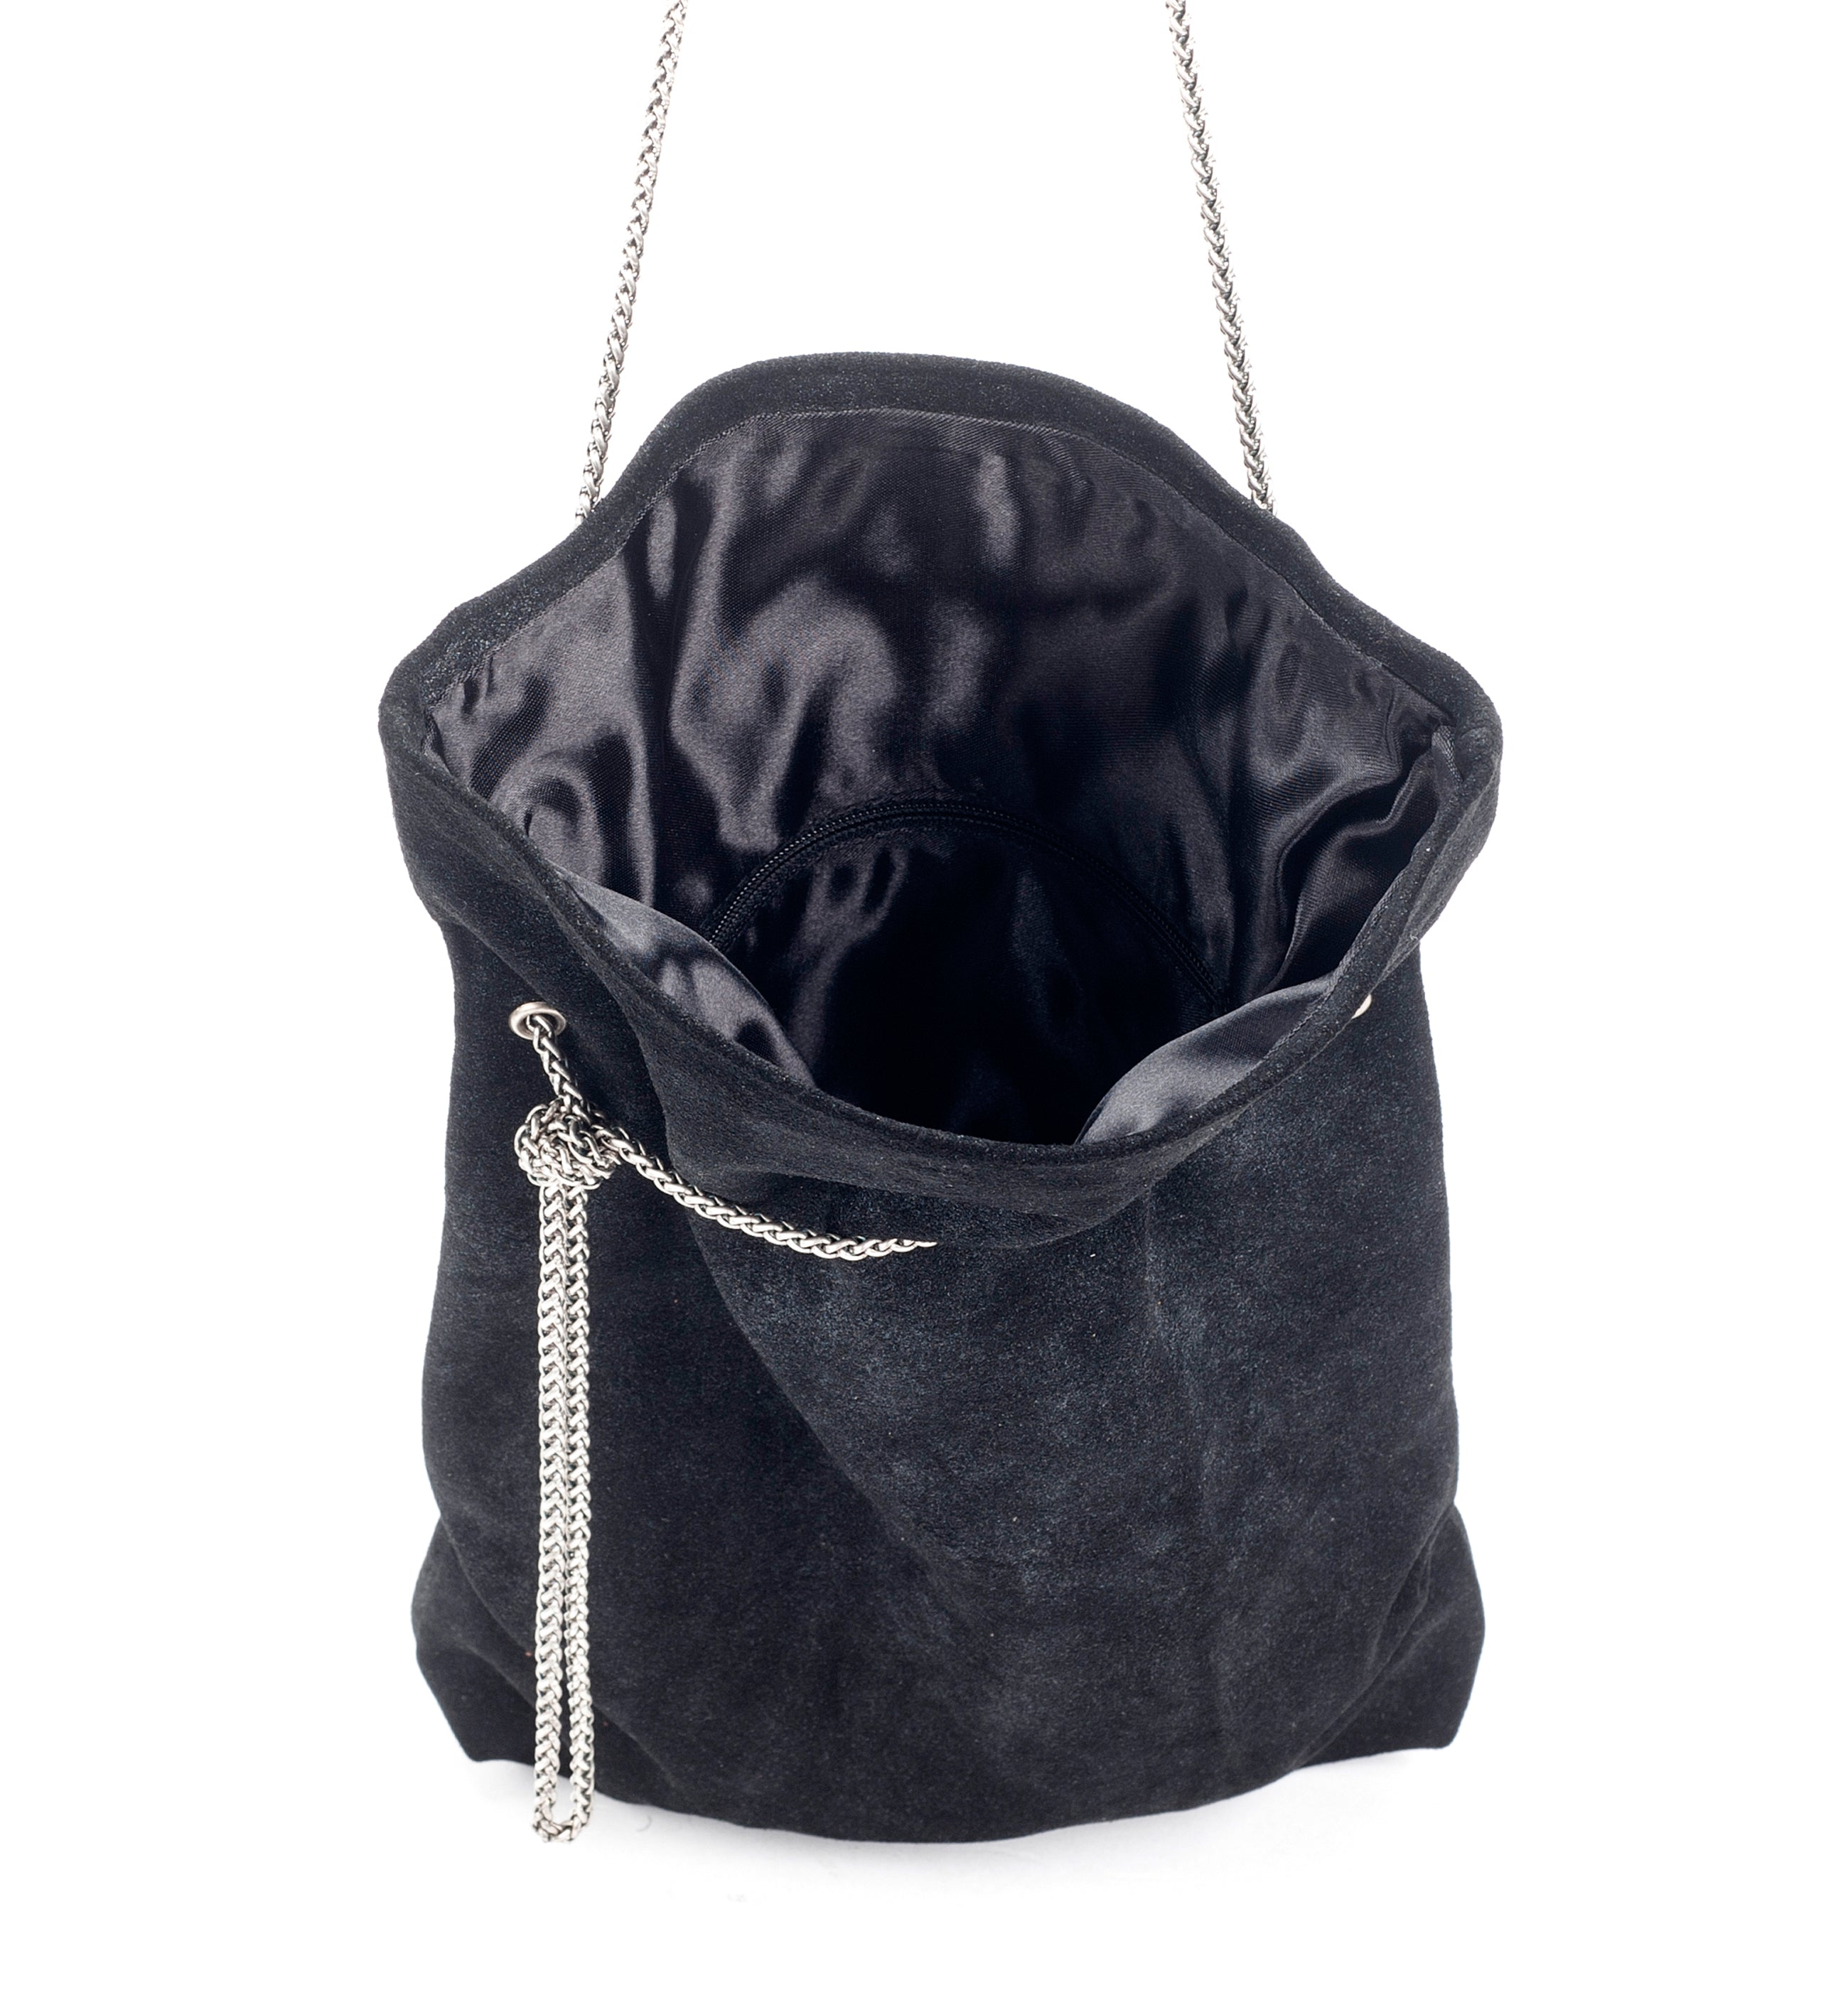 Black suede elegant evening metal chain purse woman small bag